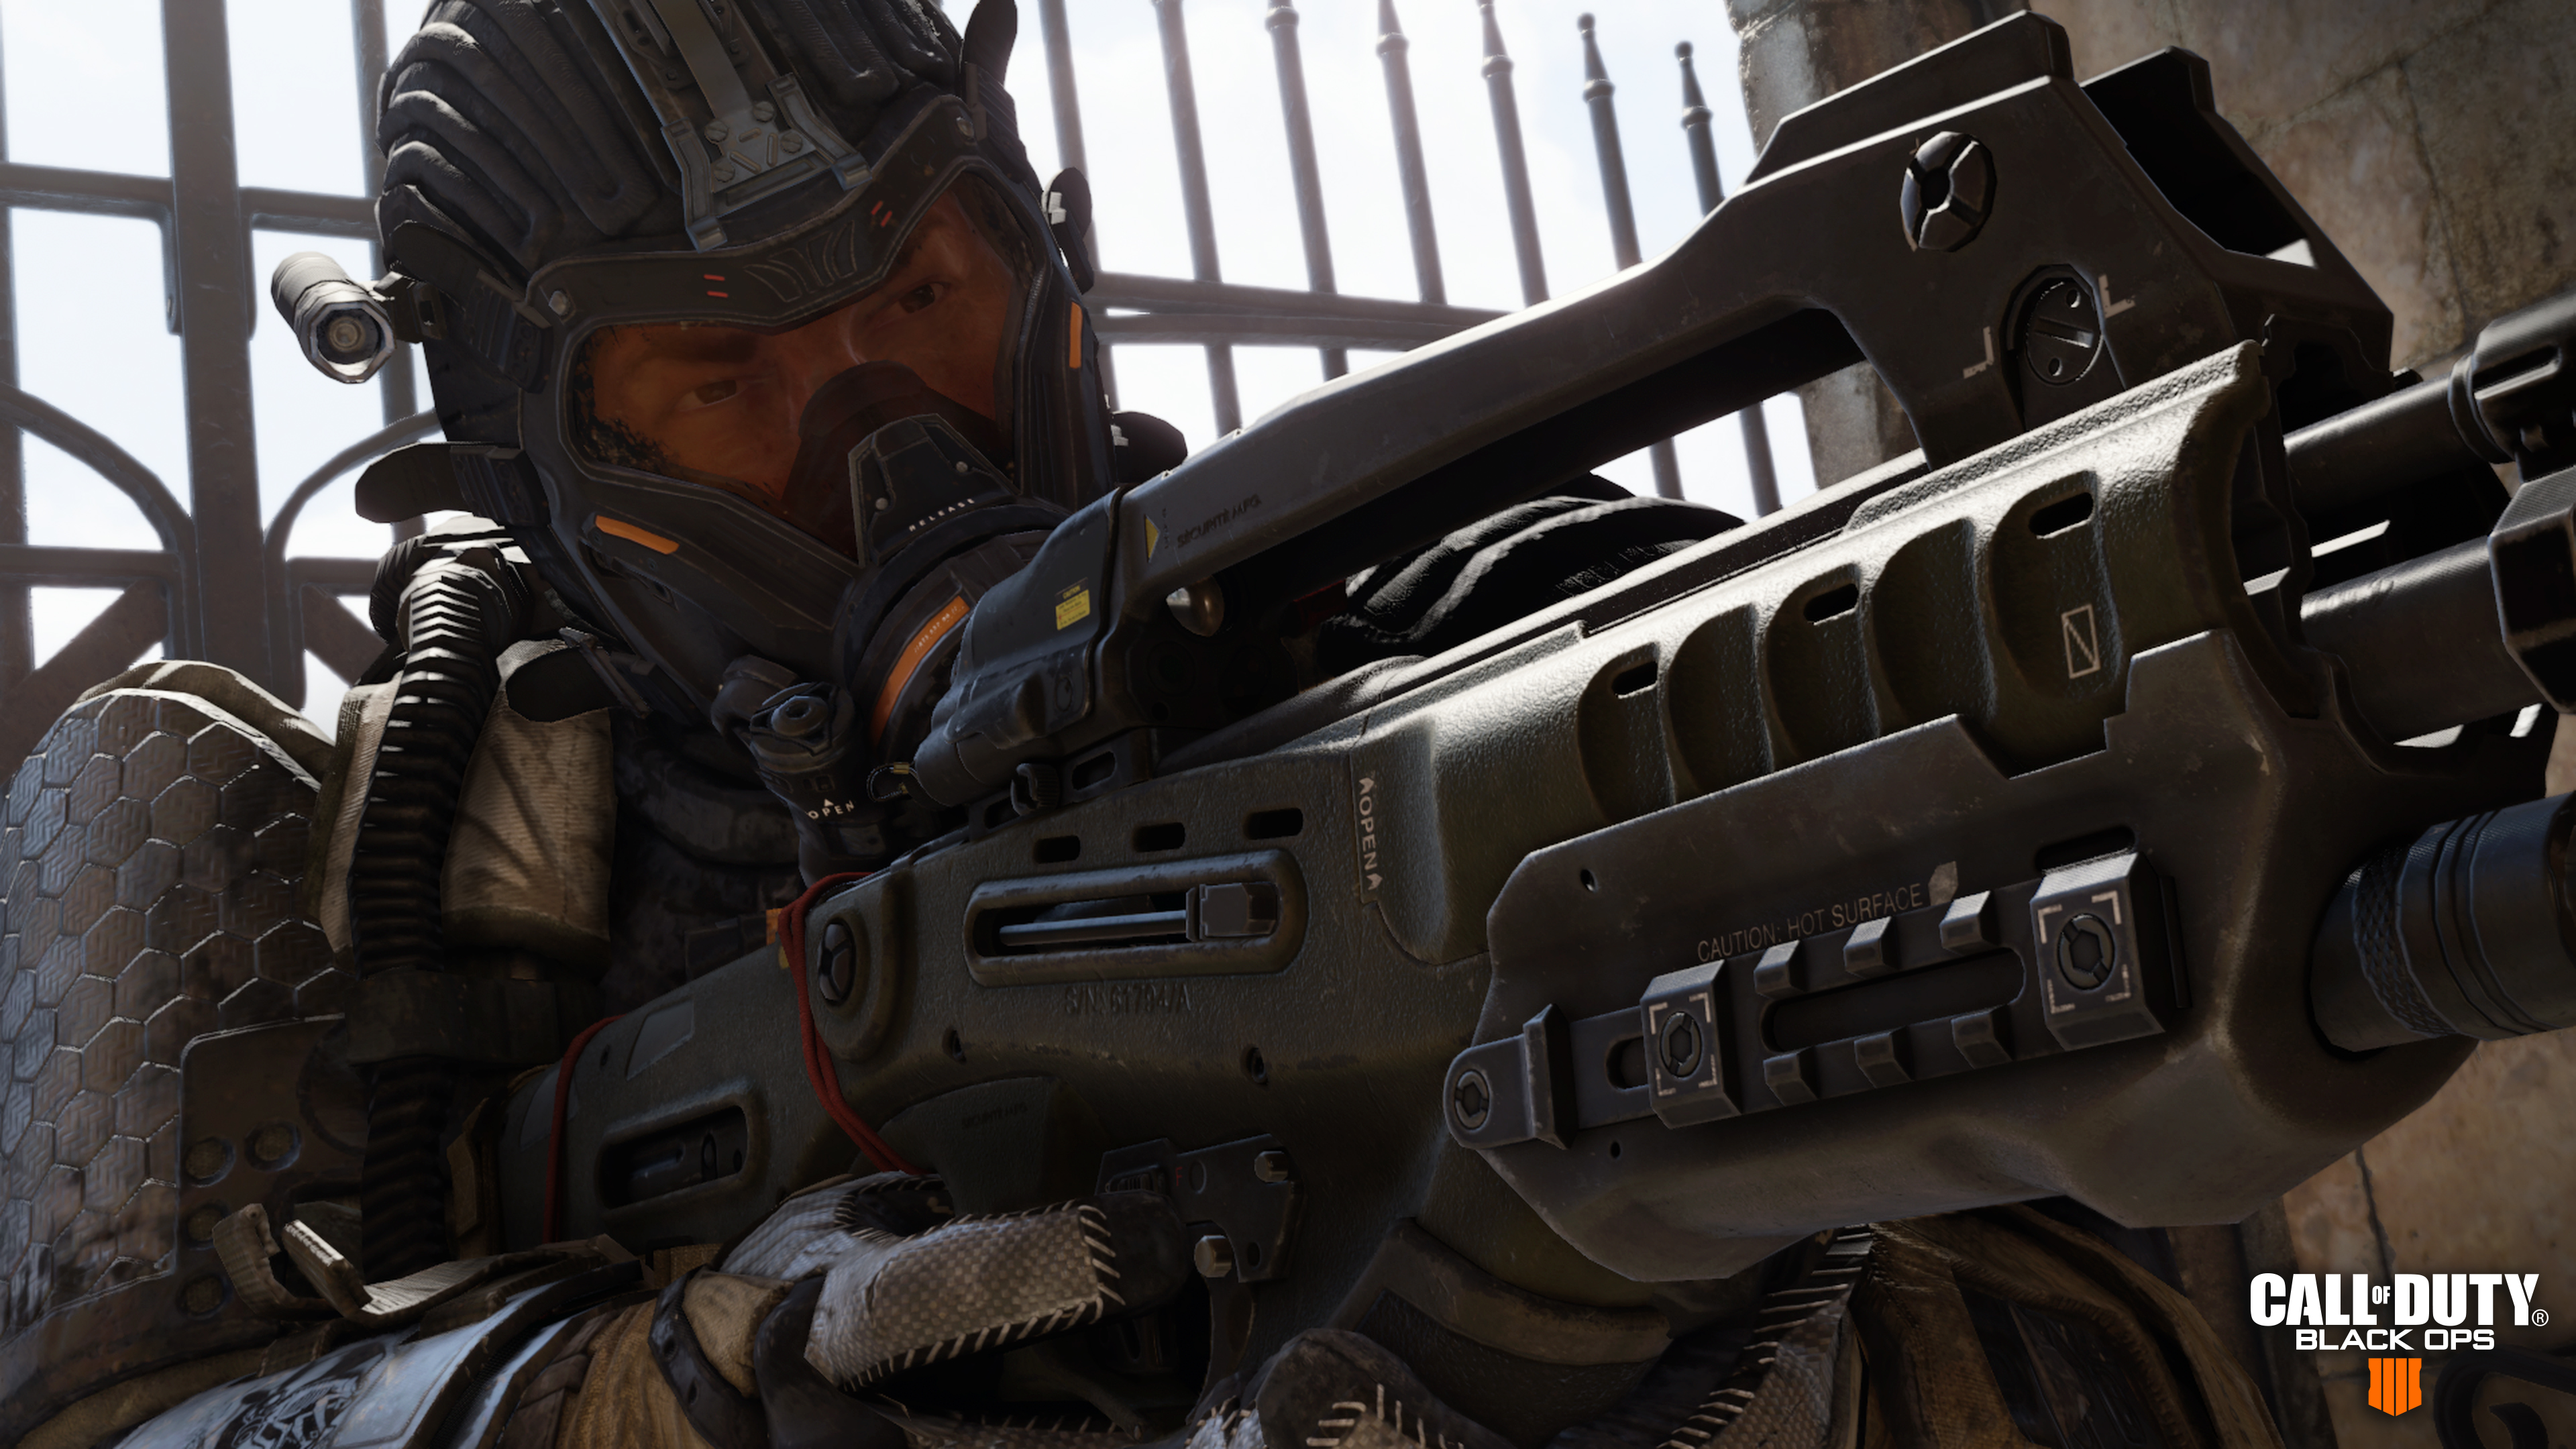 More info about Call of Duty: Black Ops 4 revealed – Ulvespill